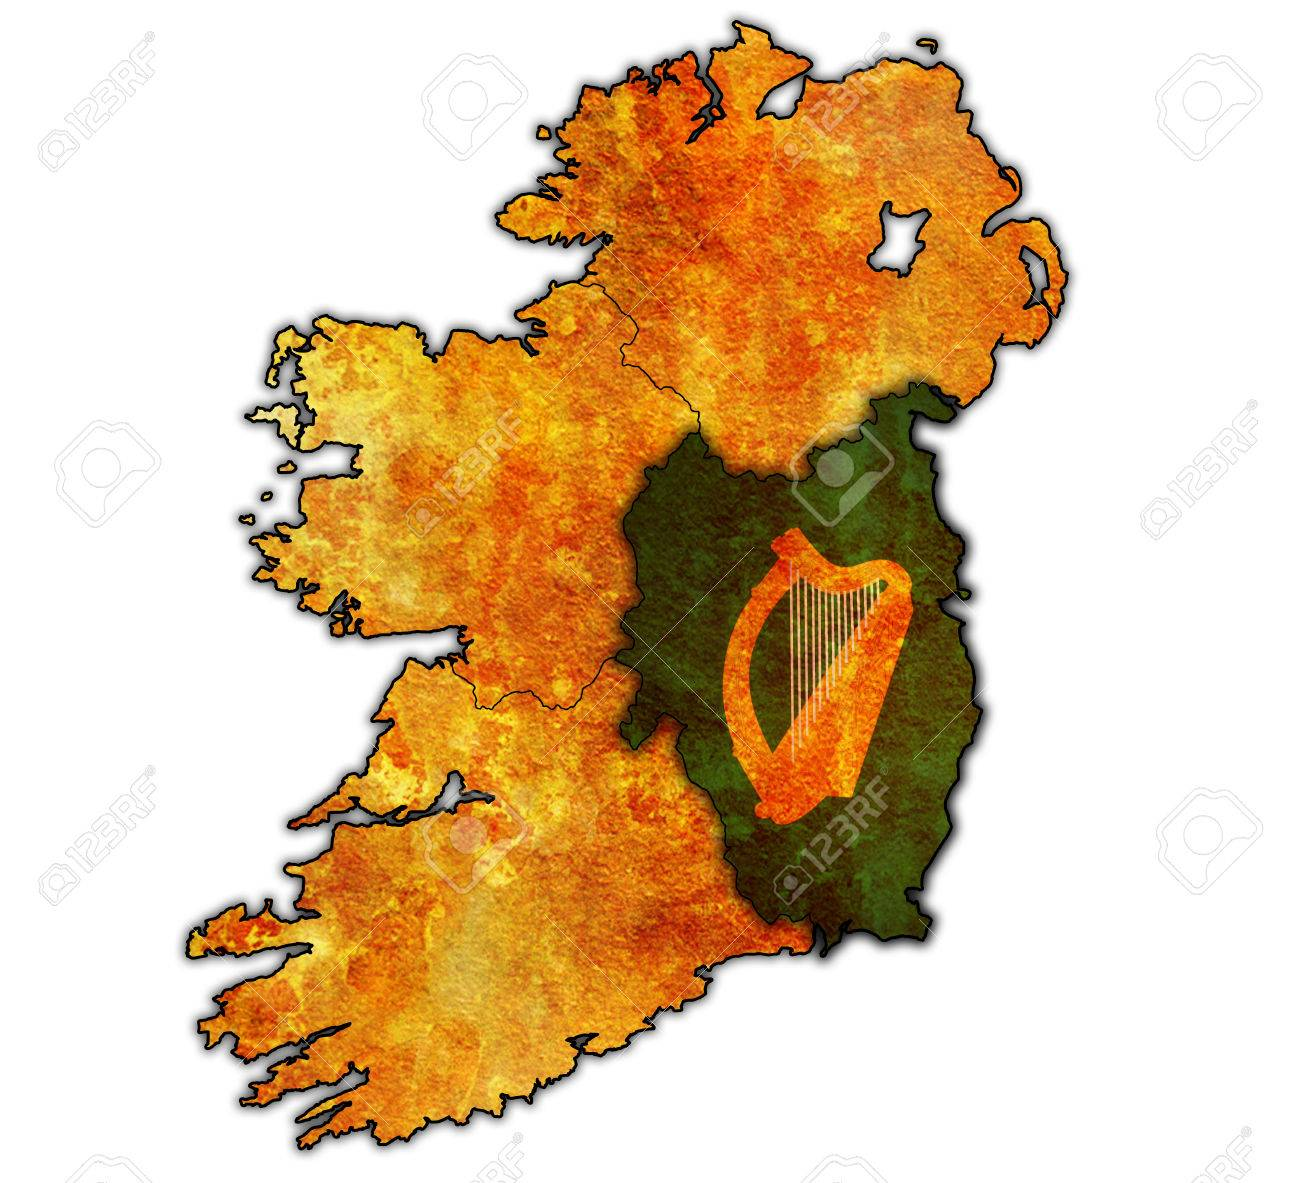 Map Of Ireland Leinster.Leinster With Borders And Flags Of Provinces On Map Of Ireland